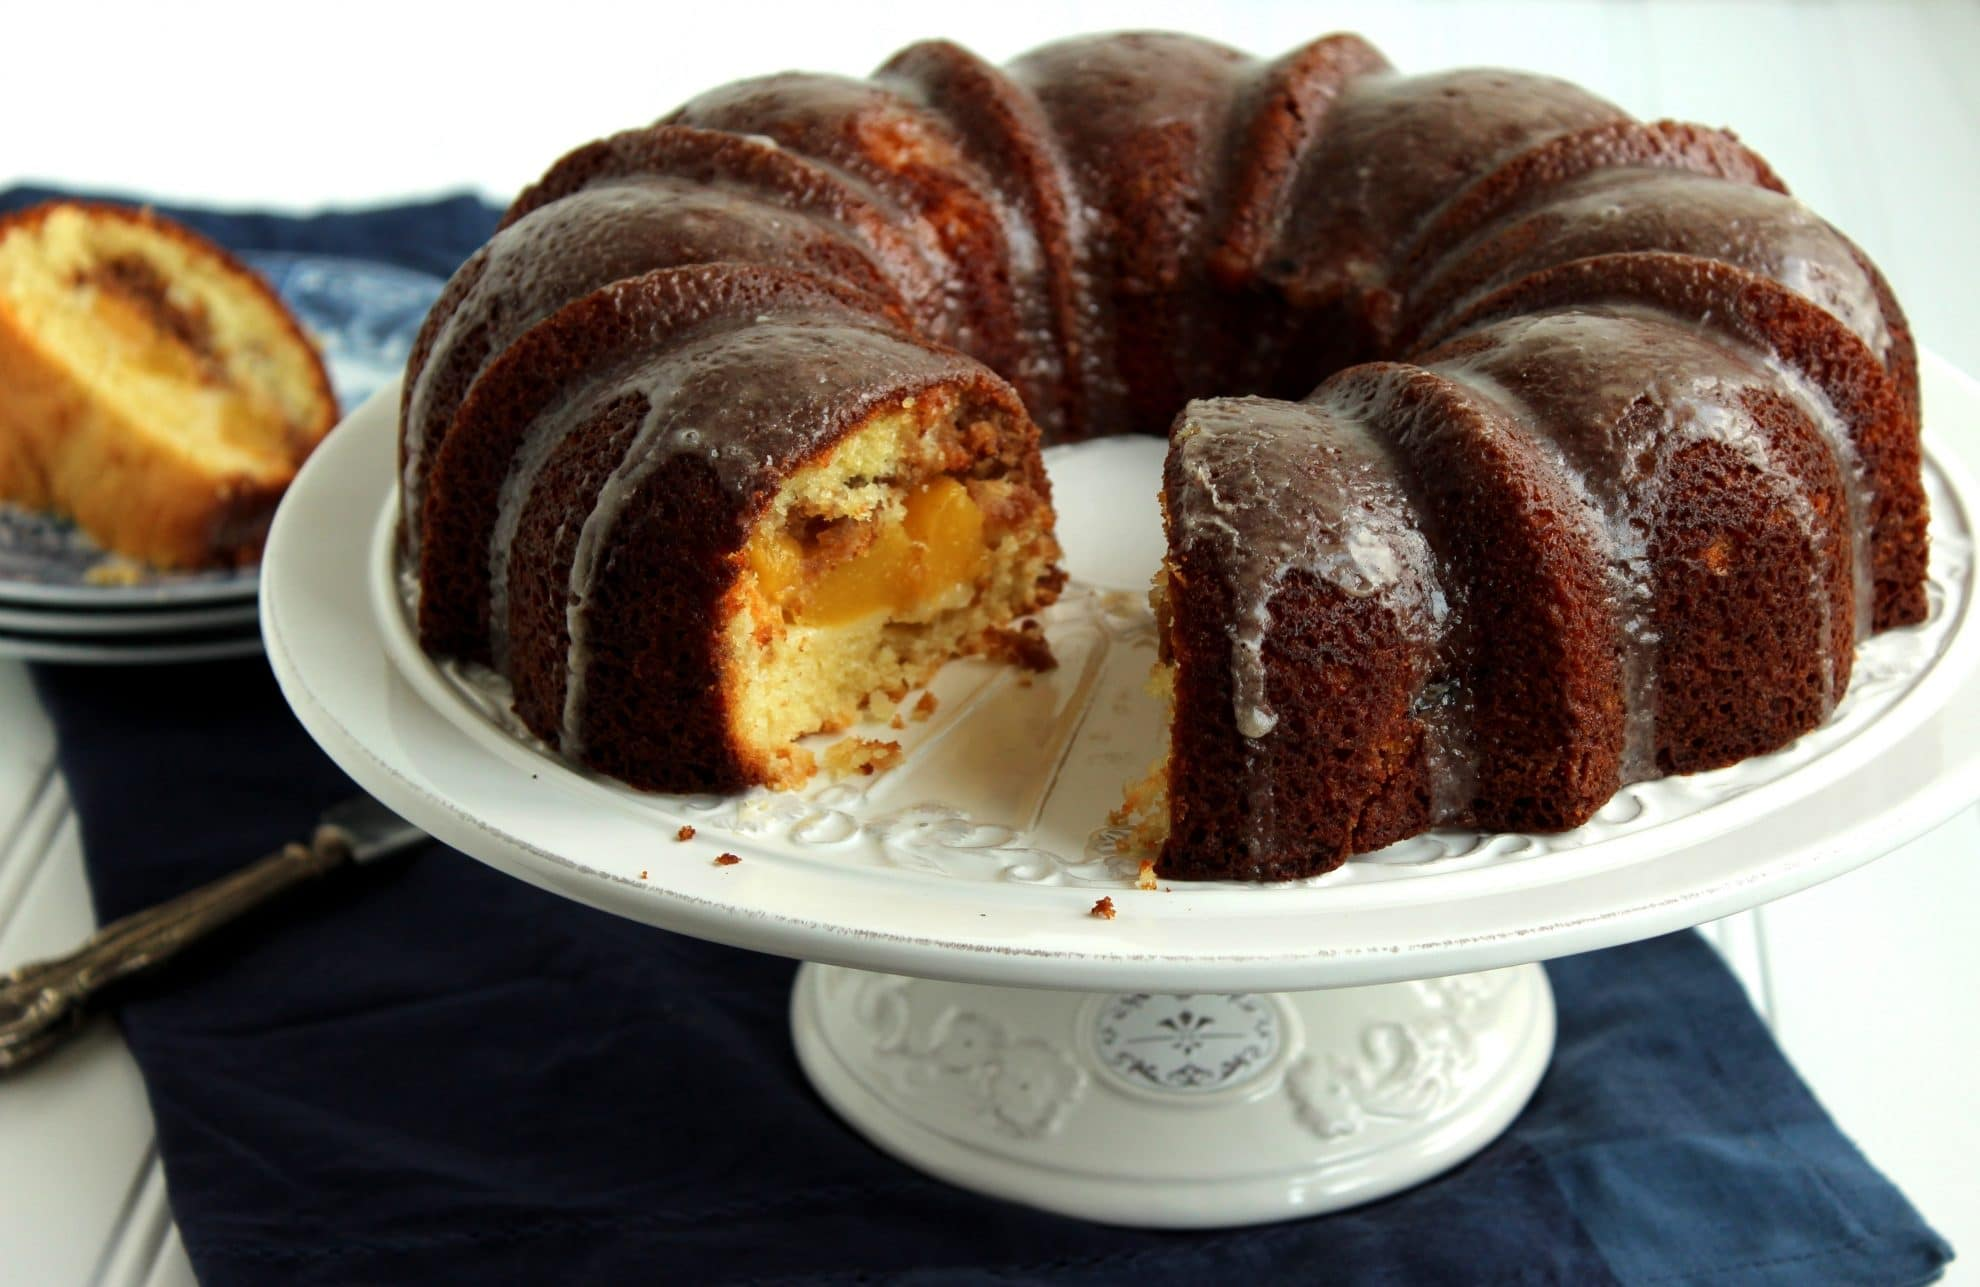 Peach Streusel Bundt Cake with Bourbon Vanilla Bean Glaze